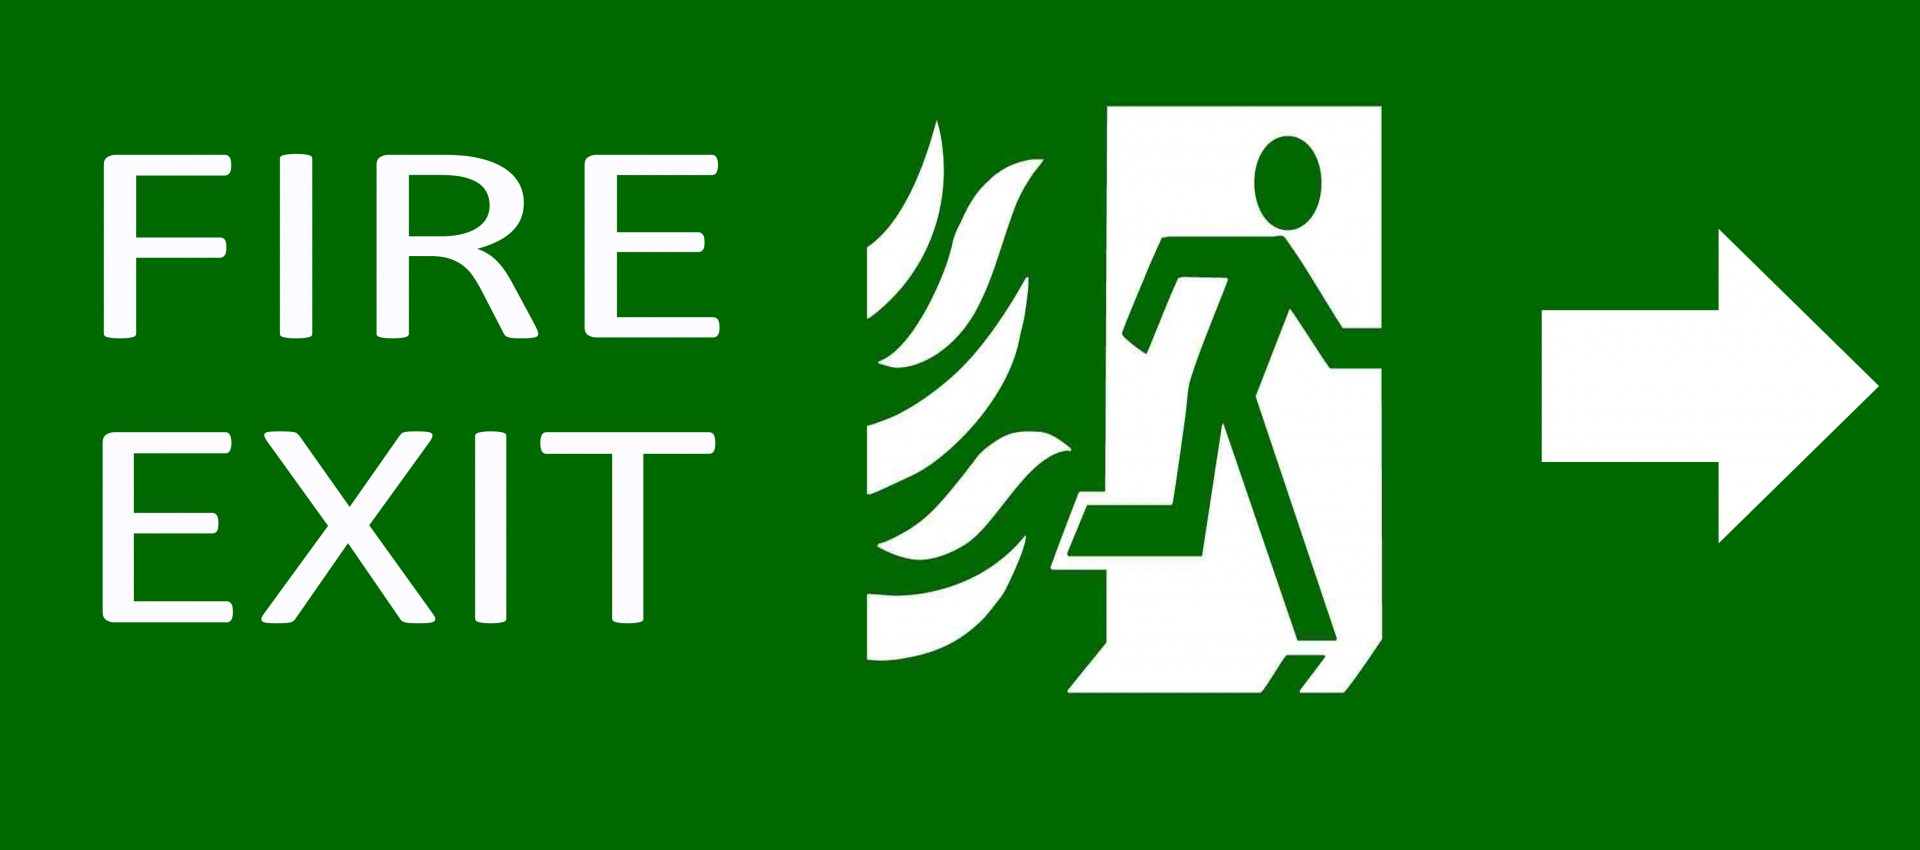 green-exit-emergency-sign-on-white